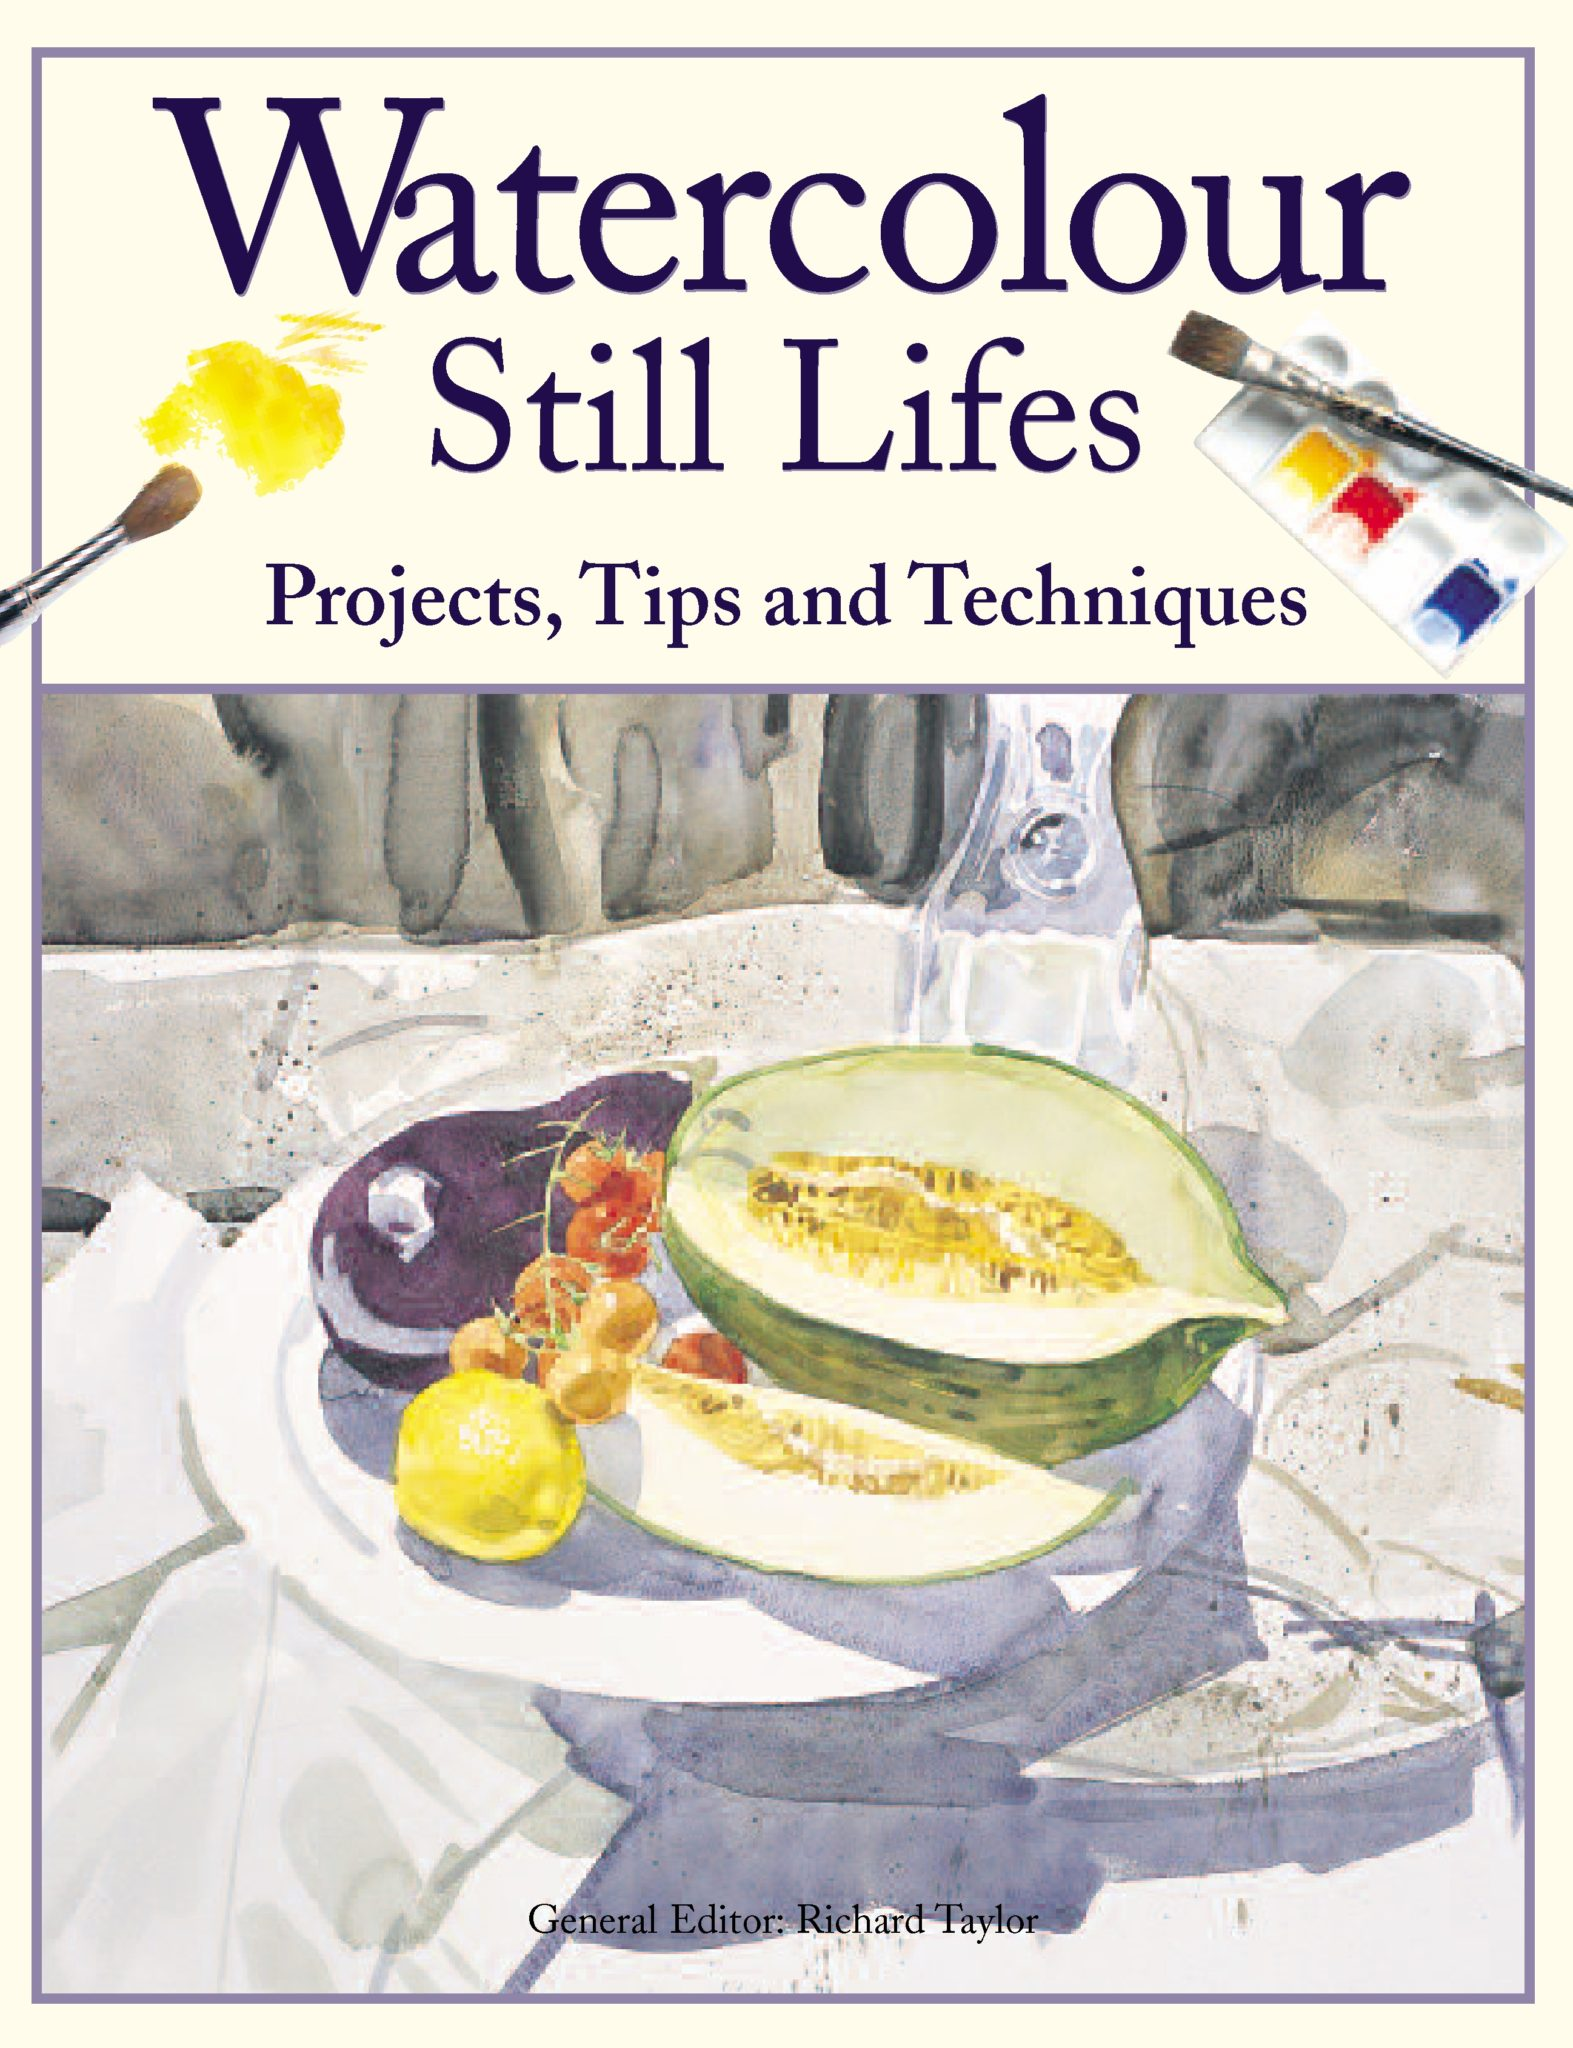 Watercolour Still Lifes